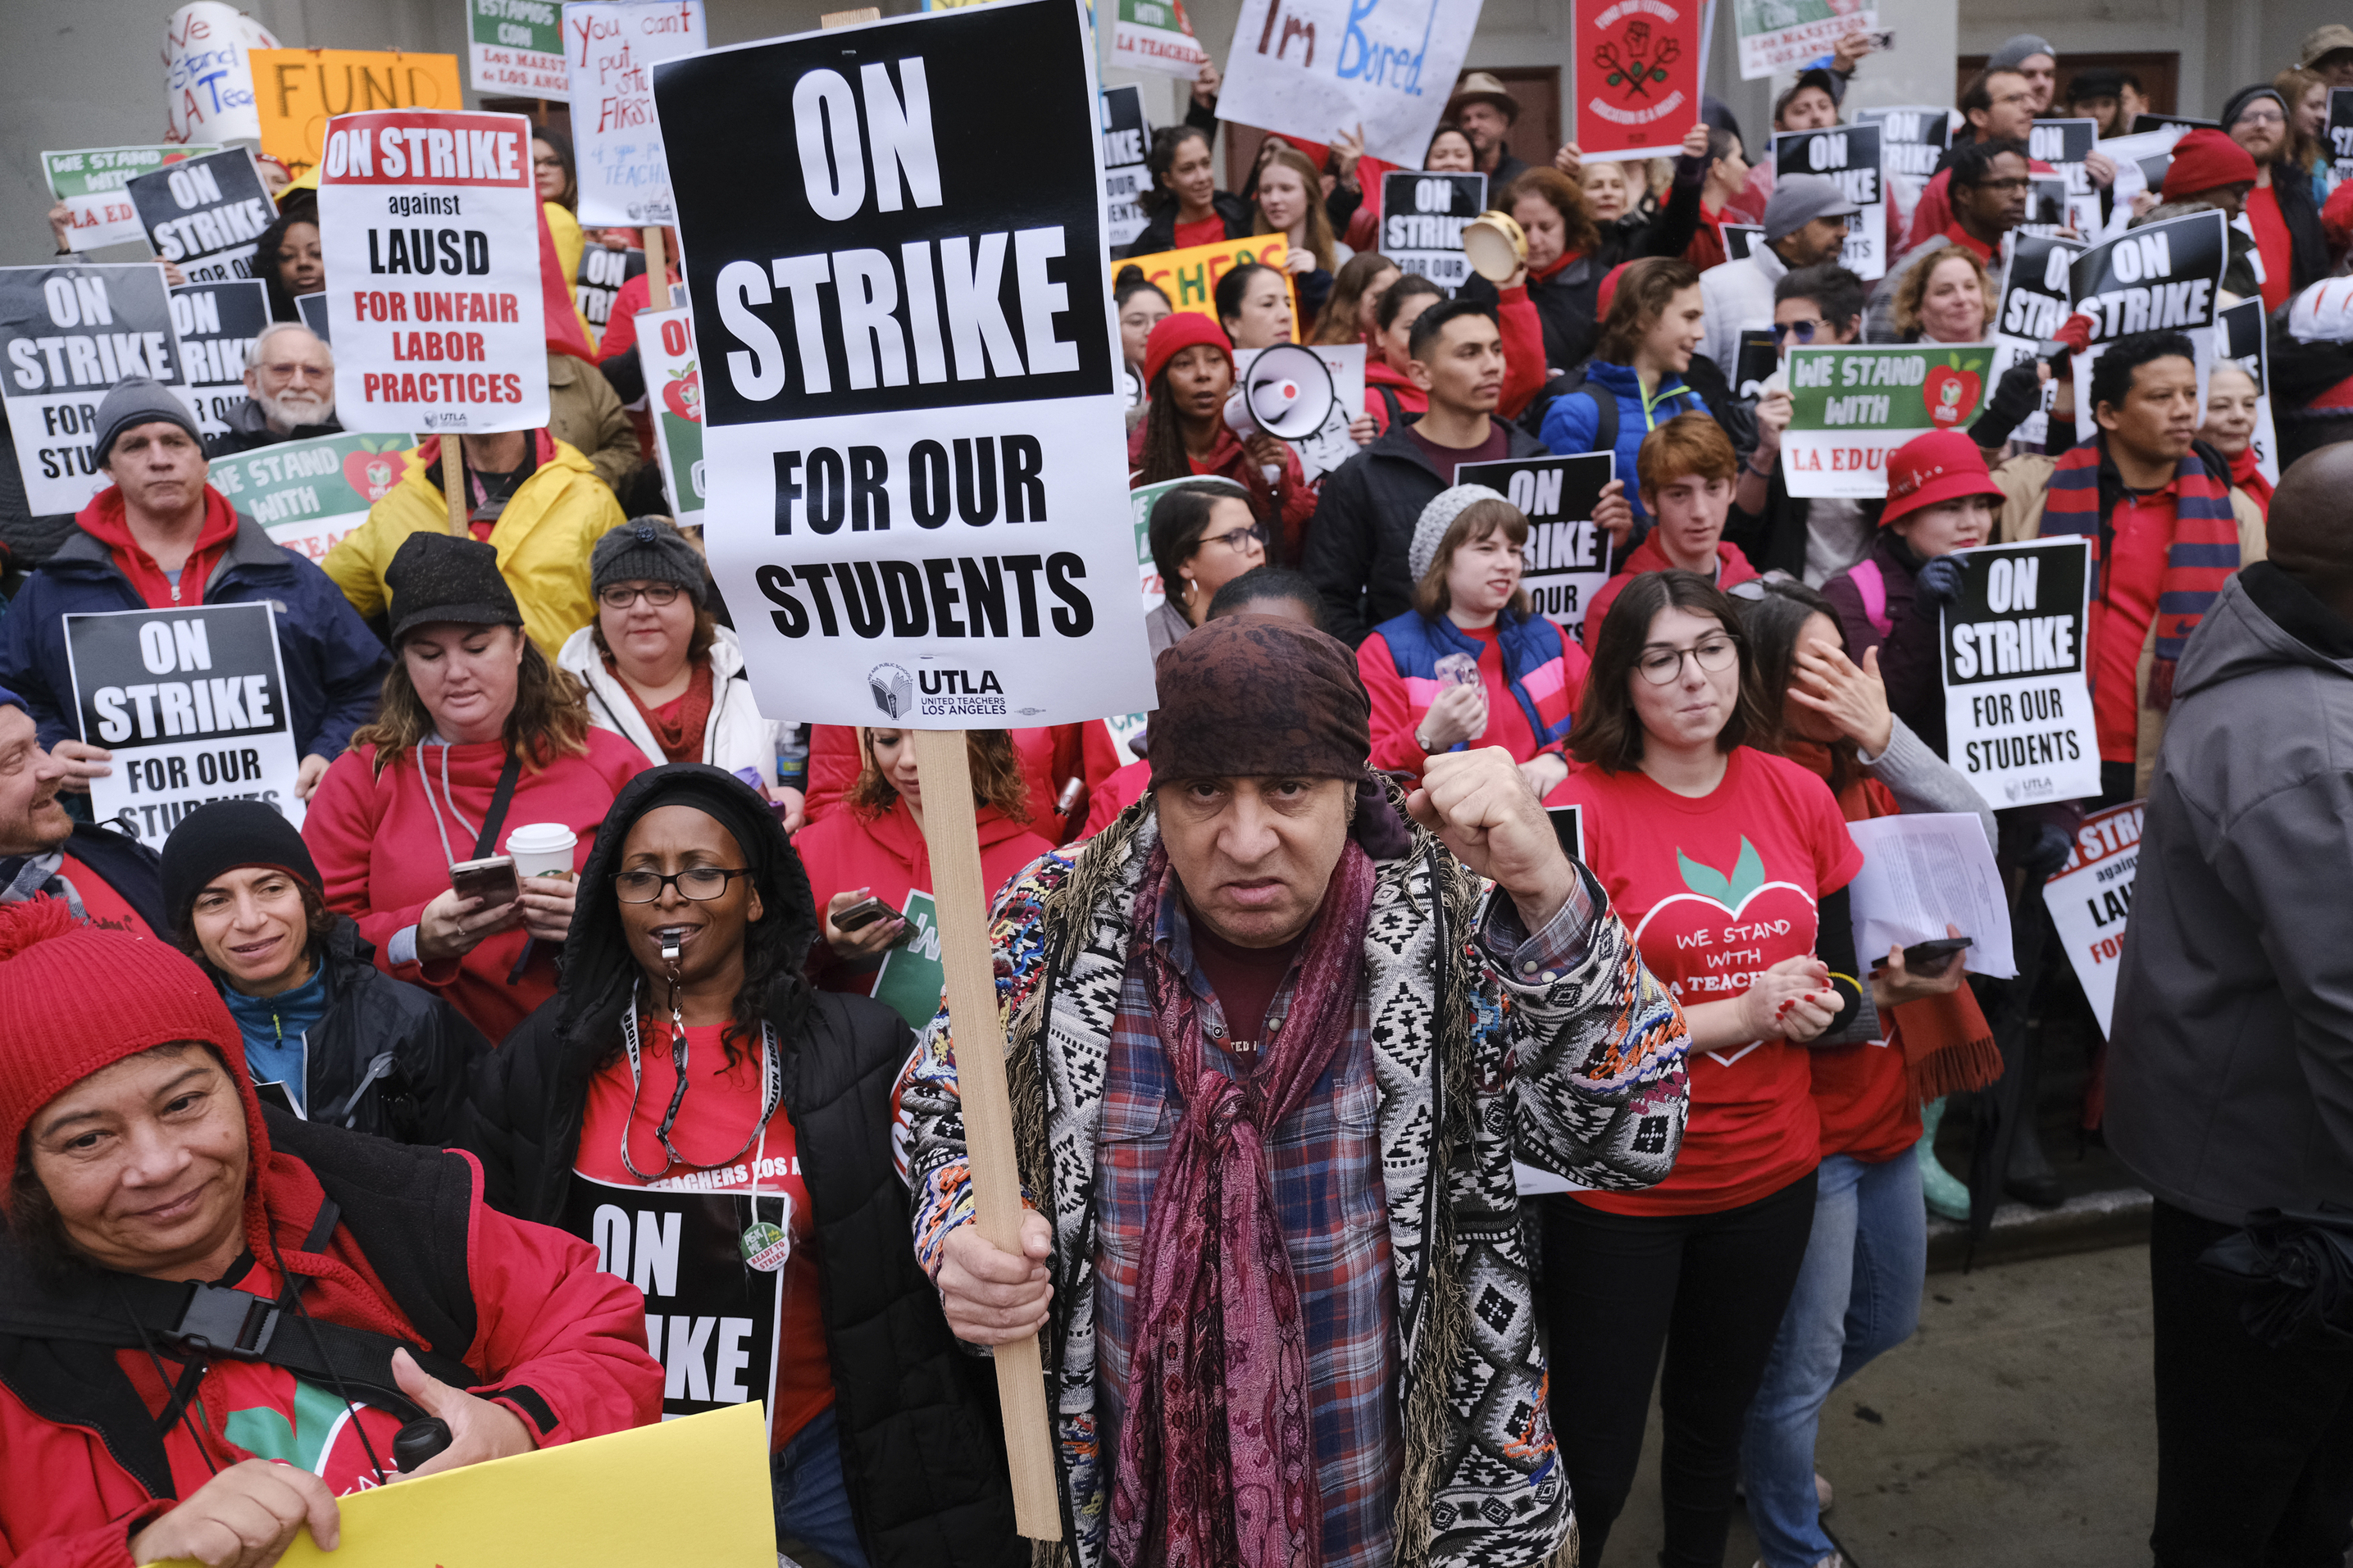 Actor, musician and activist, Steven Van Zandt, center, supports striking teachers on the picket in front of Hamilton High School in Los Angeles, Jan. 16, 2019.